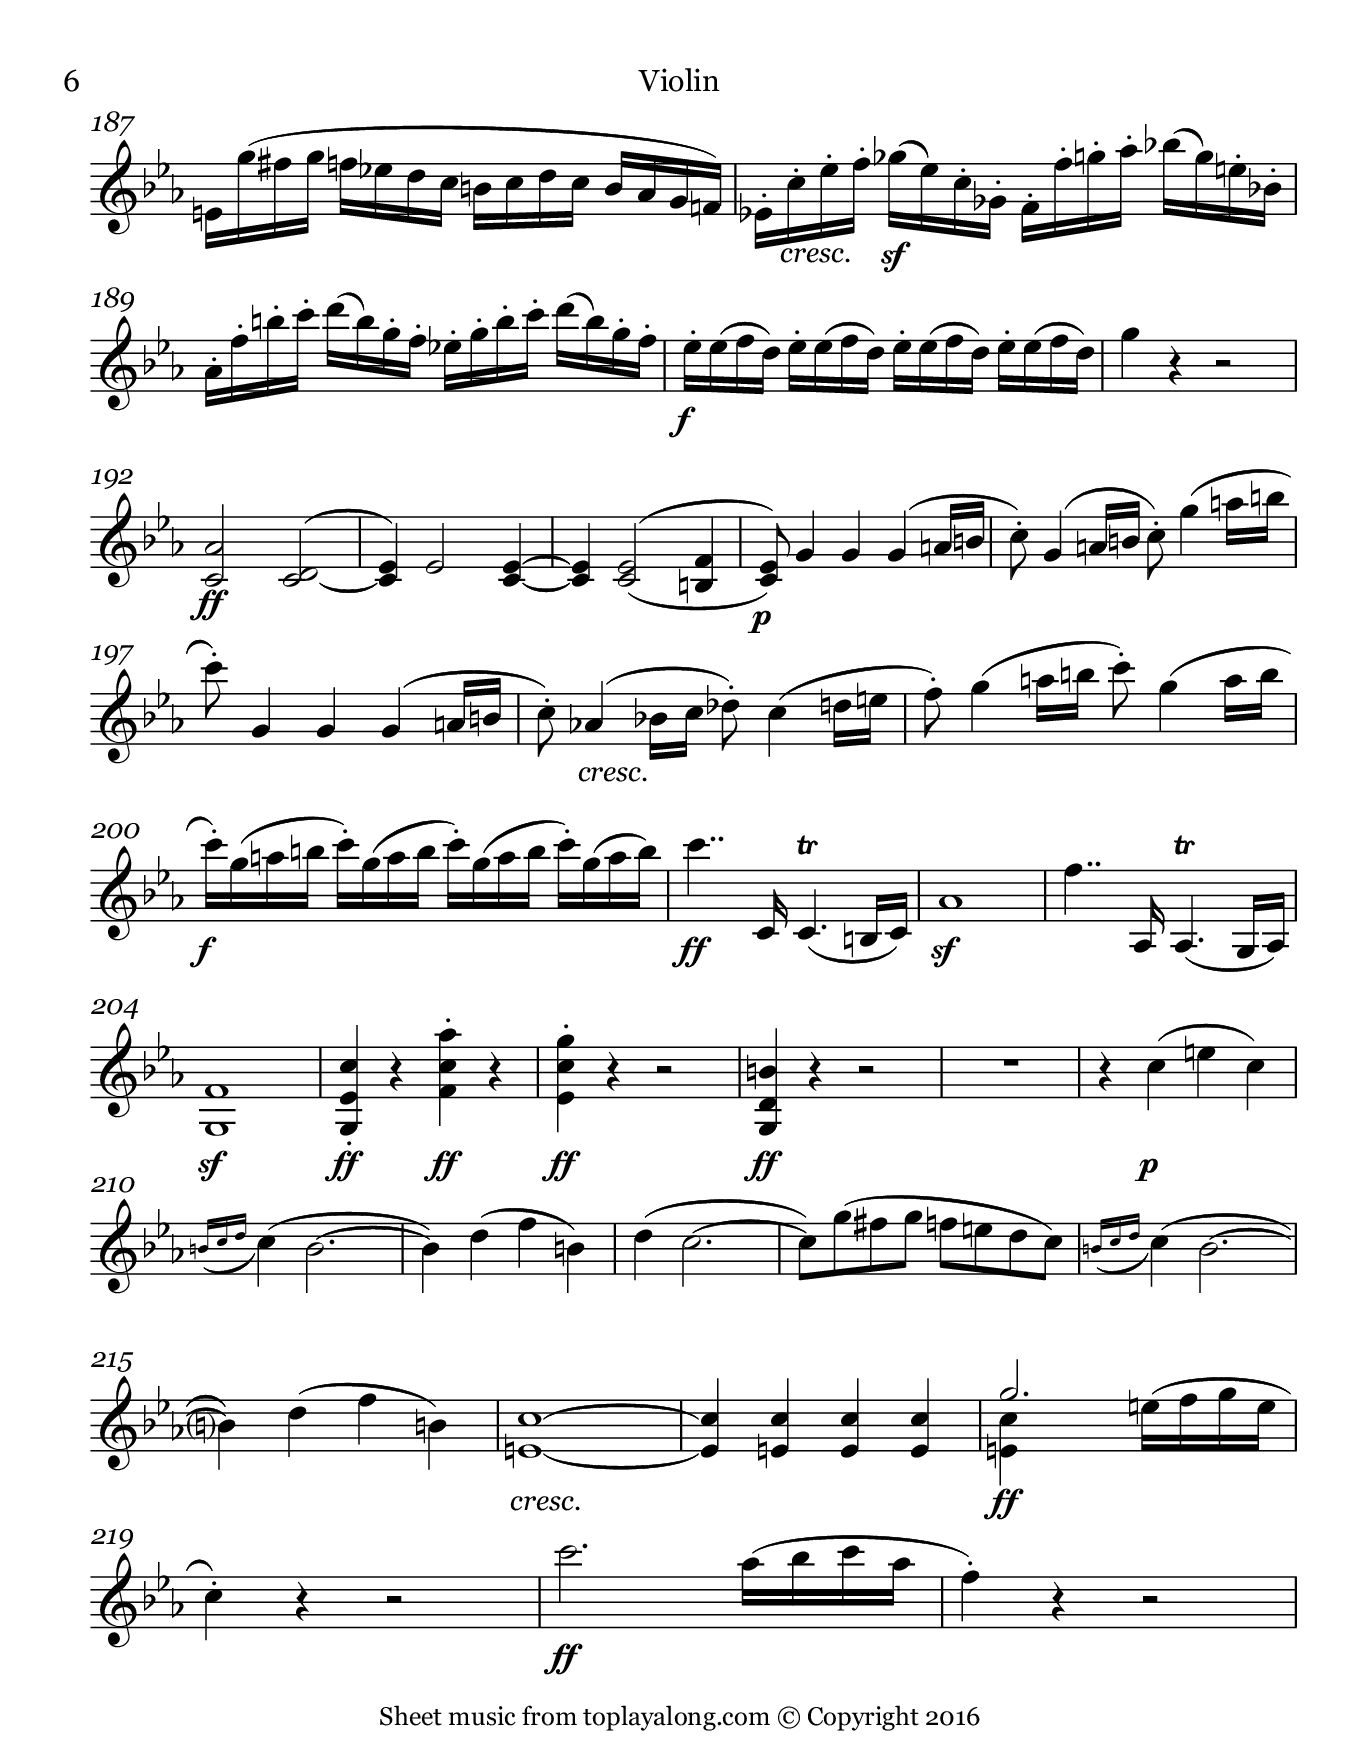 Violin Sonata No. 7 (I. Allegro) by Beethoven. Sheet music for Violin, page 6.